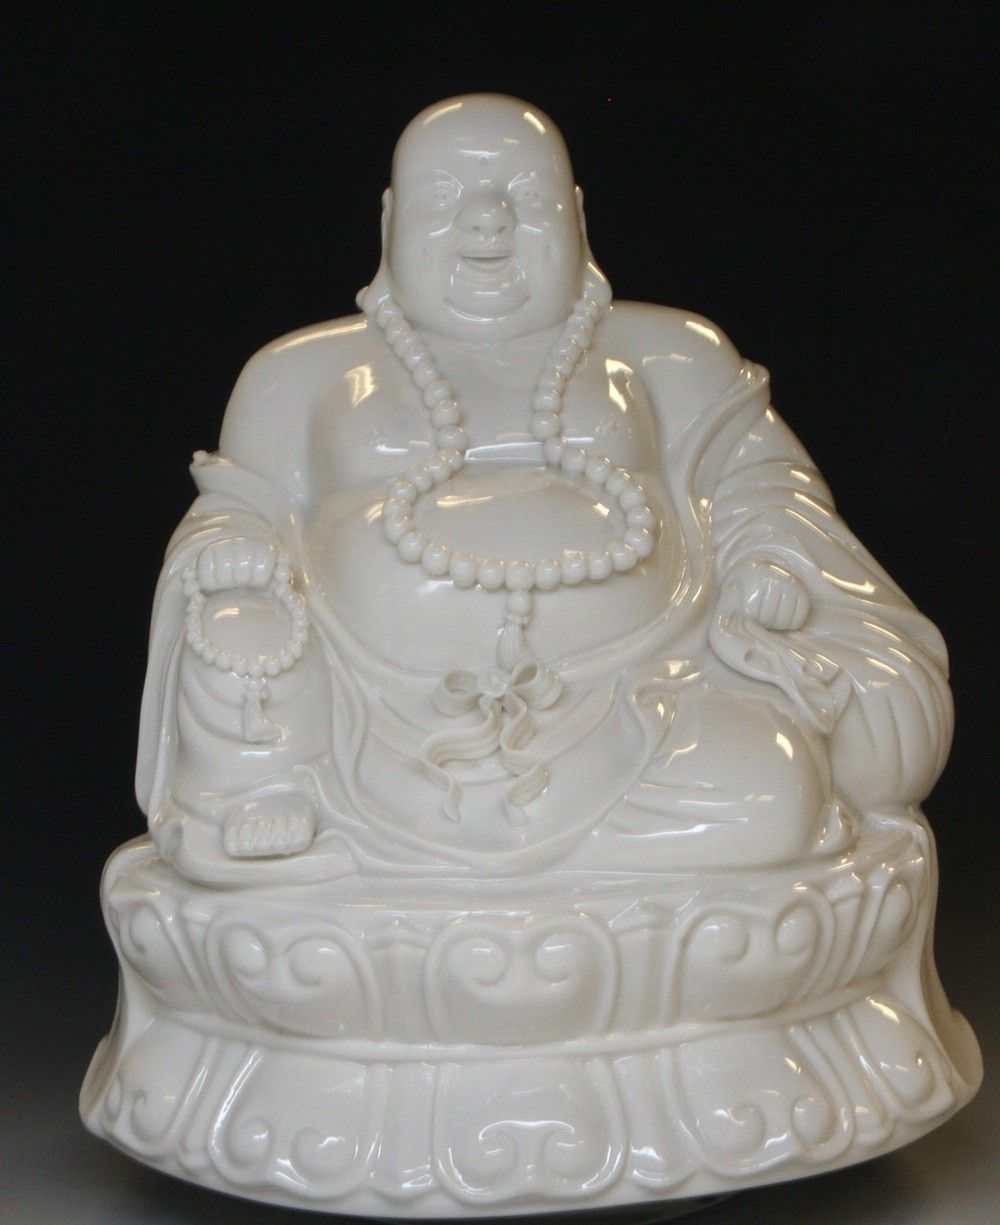 Porcelain happy buddha statue on beautifully detailed lotus base porcelain happy buddha statue on beautifully detailed lotus base symbolic of contentment and good fortune biocorpaavc Choice Image